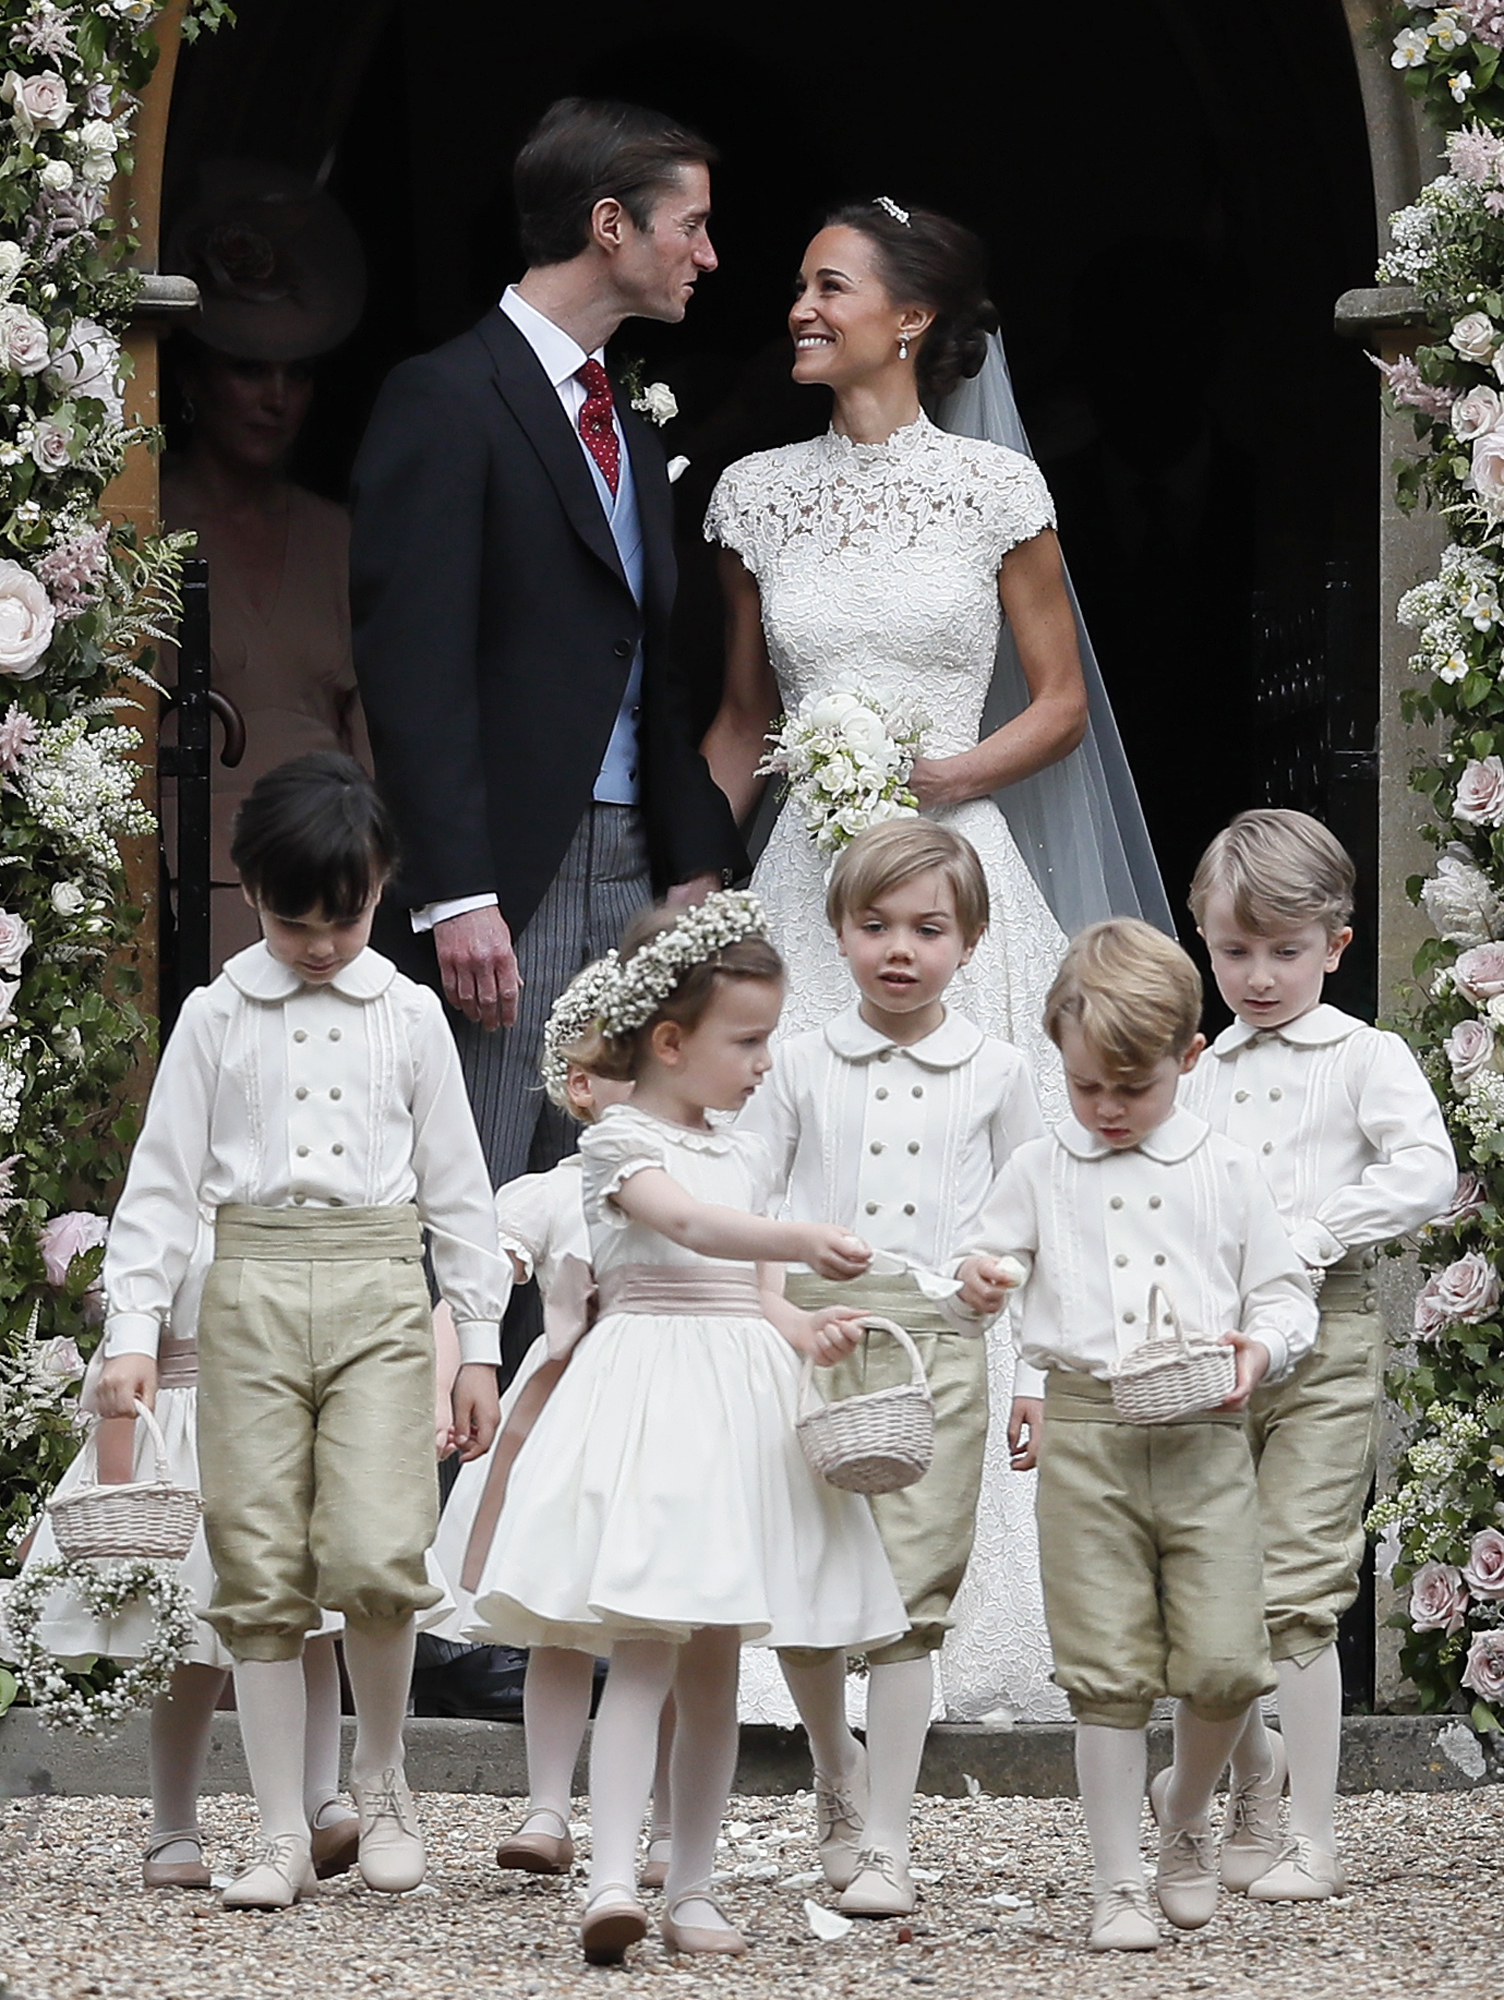 #3 Pippa Middle and James Matthews' Kid Bridal Party